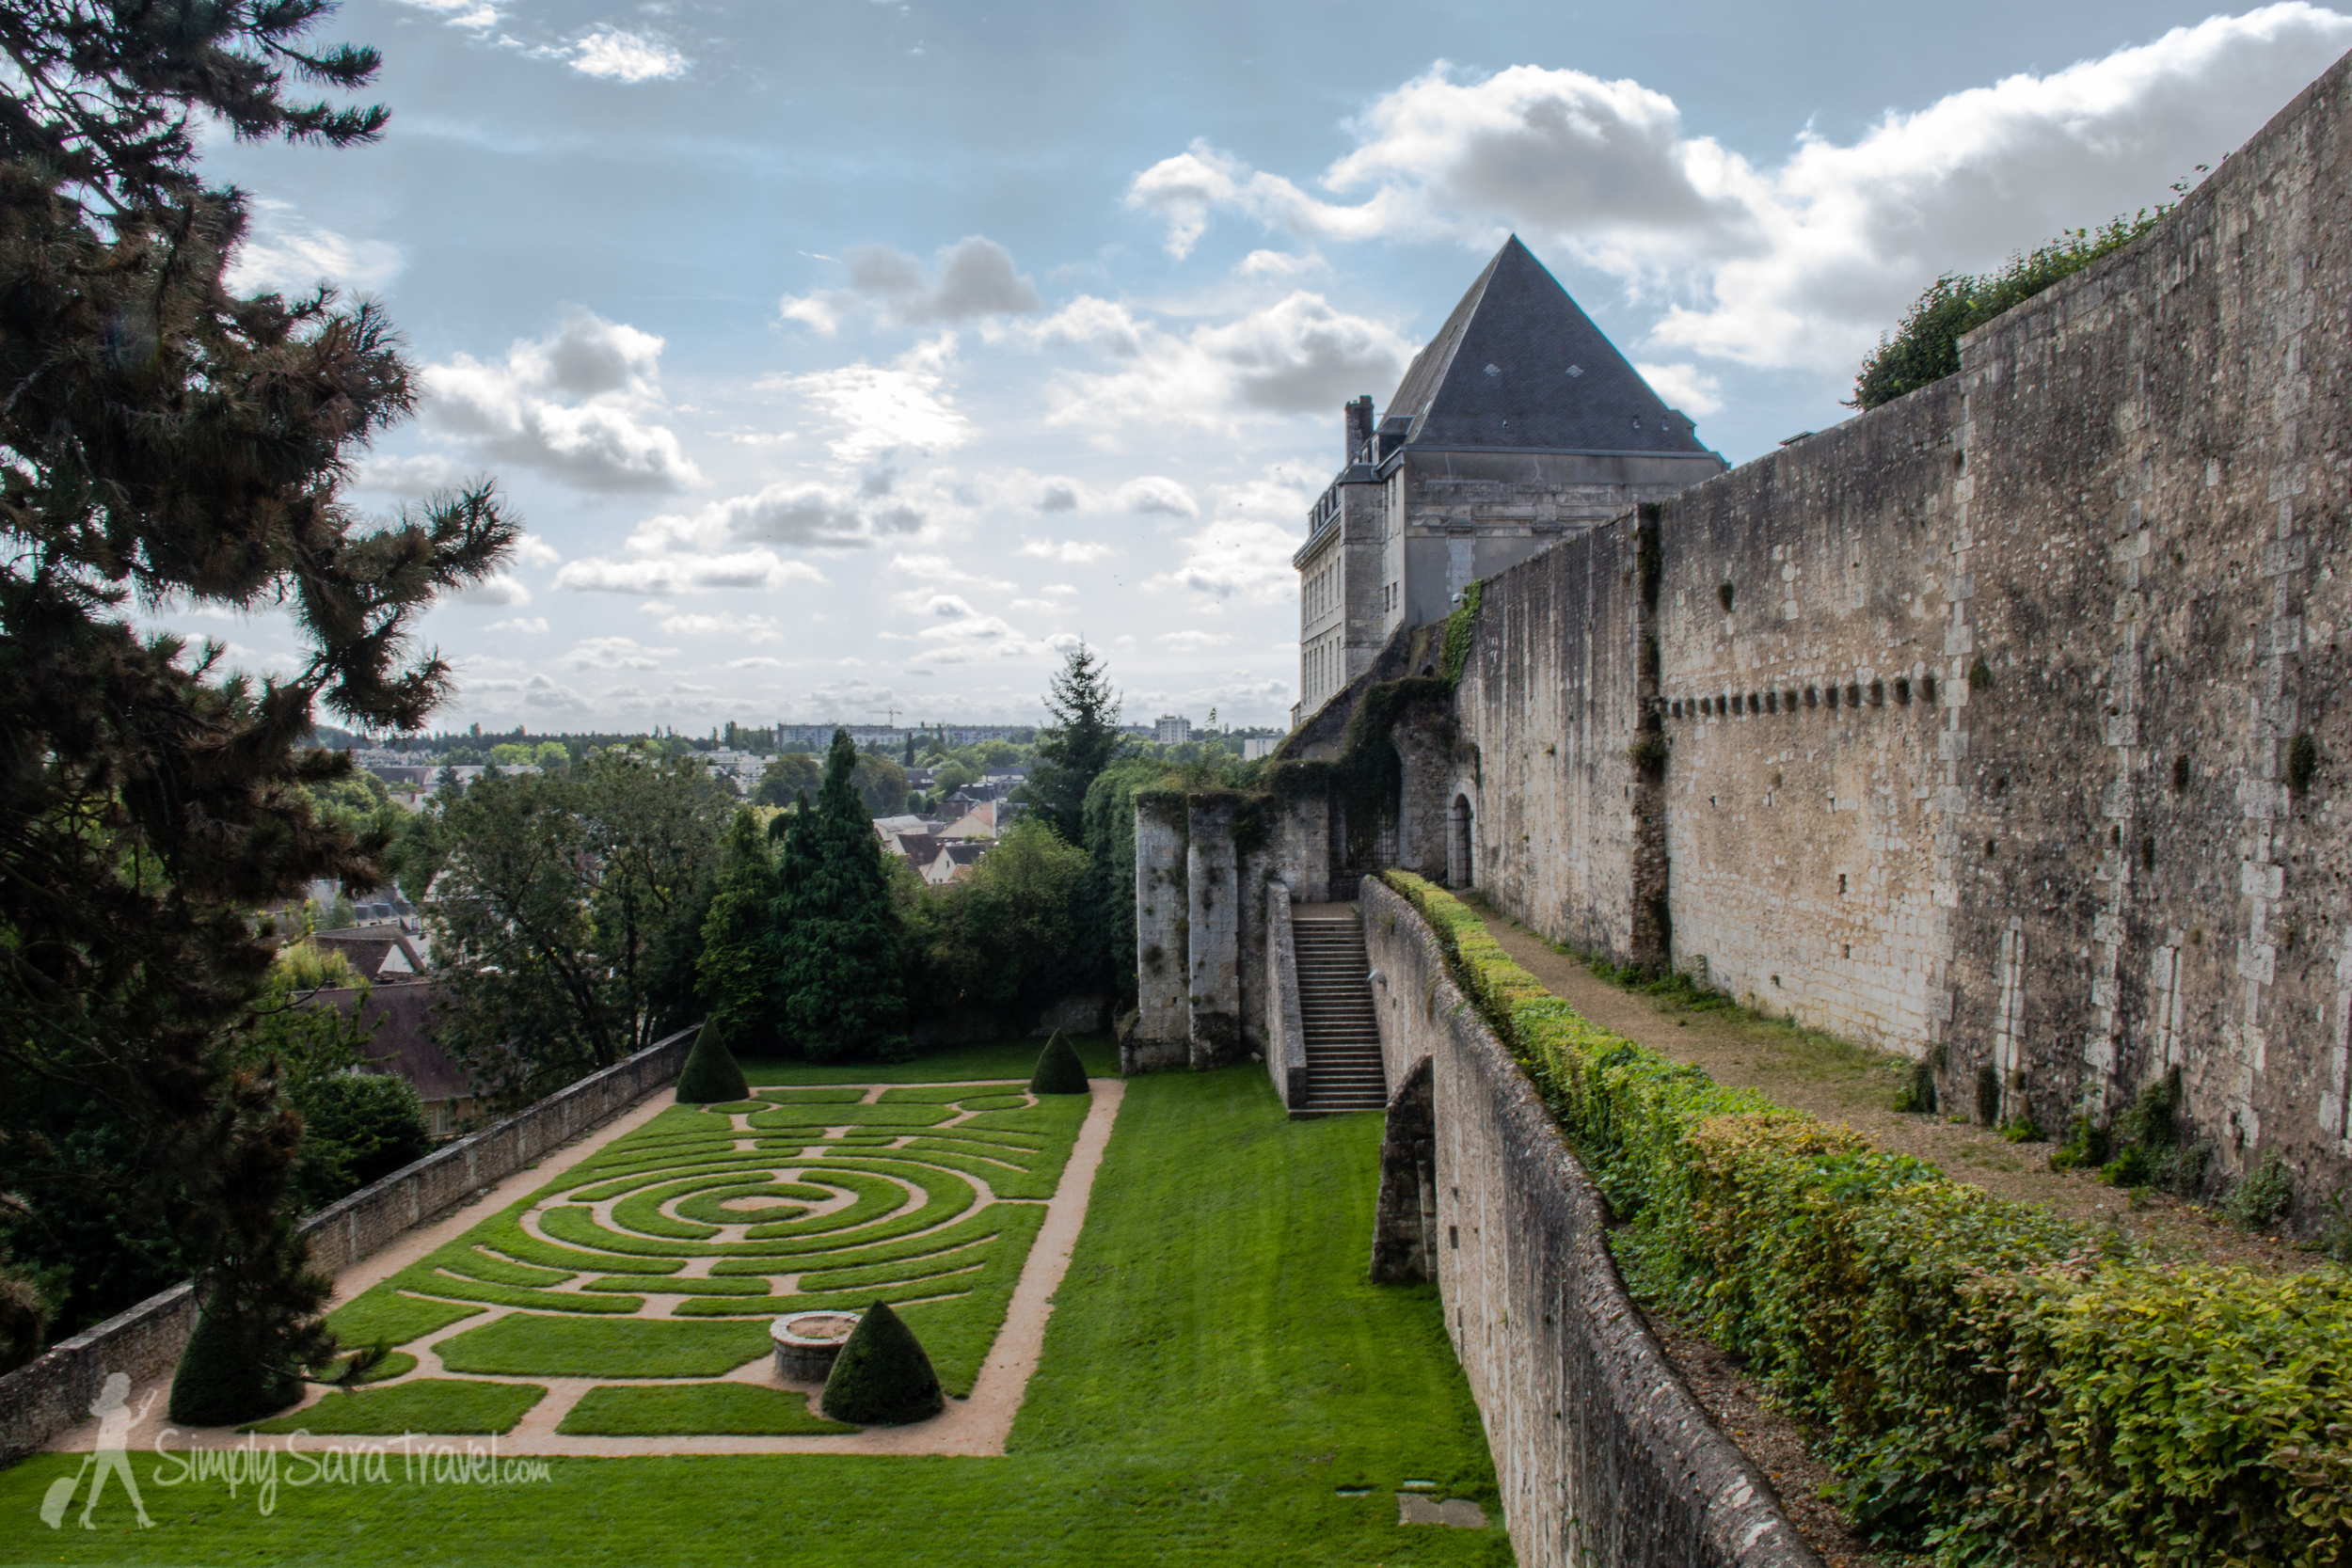 The  terrace  was built in the early 17th century by order of Bishop Léonor d'Estampes. The gardens were created later by his successors.